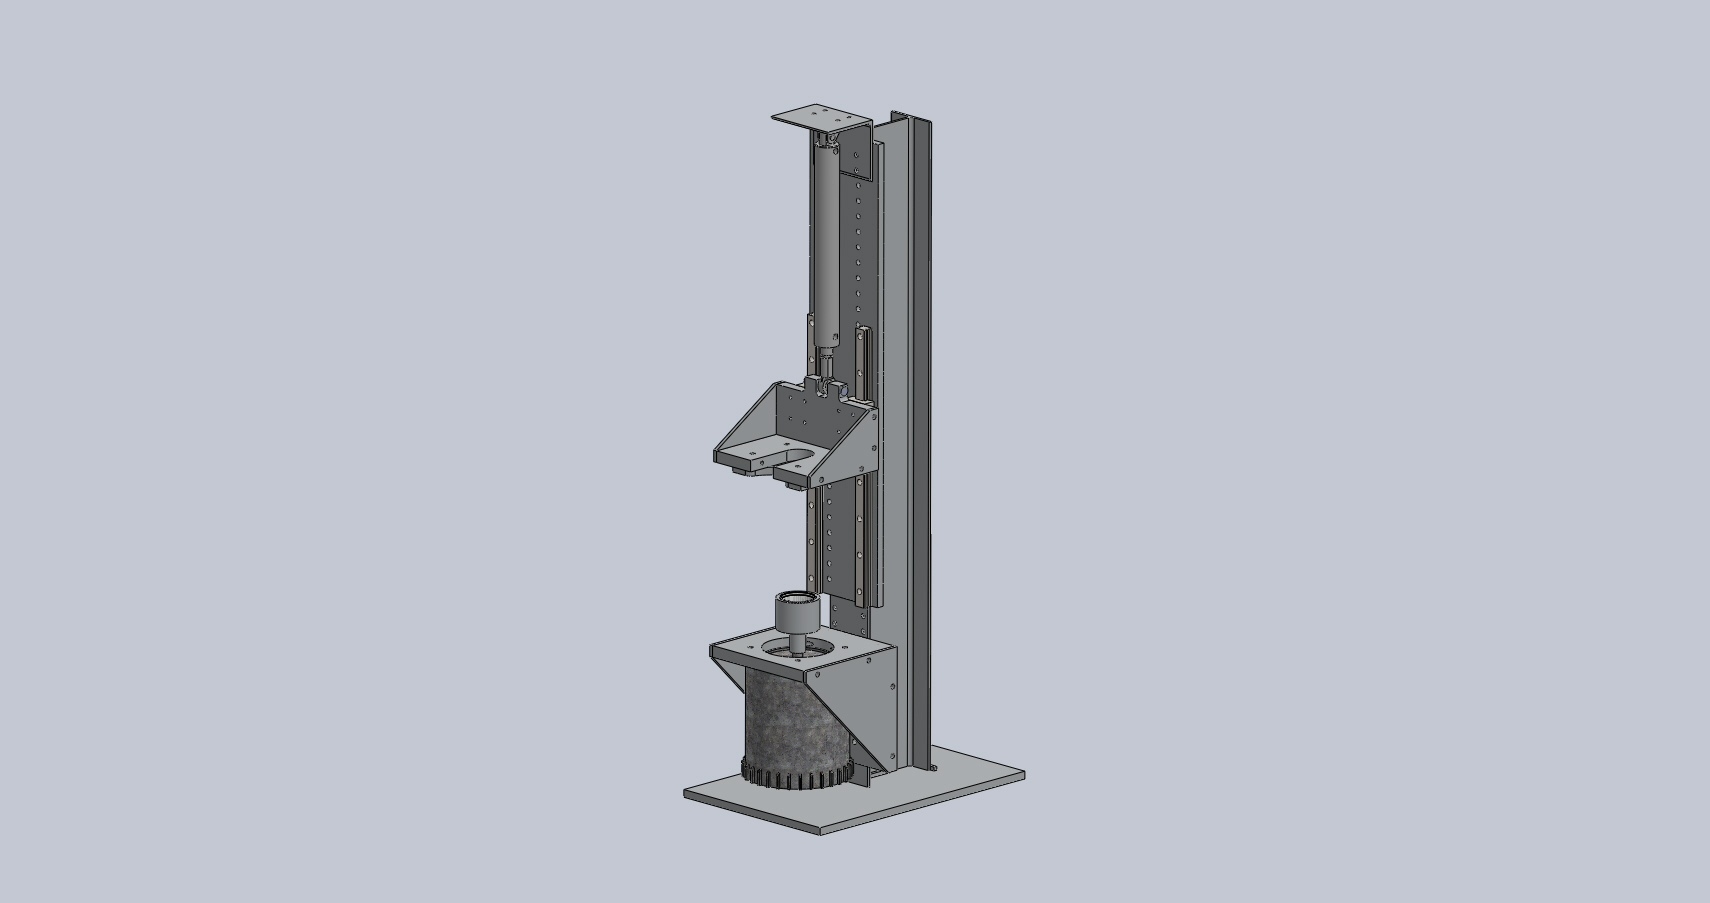 3D solidworks drawing